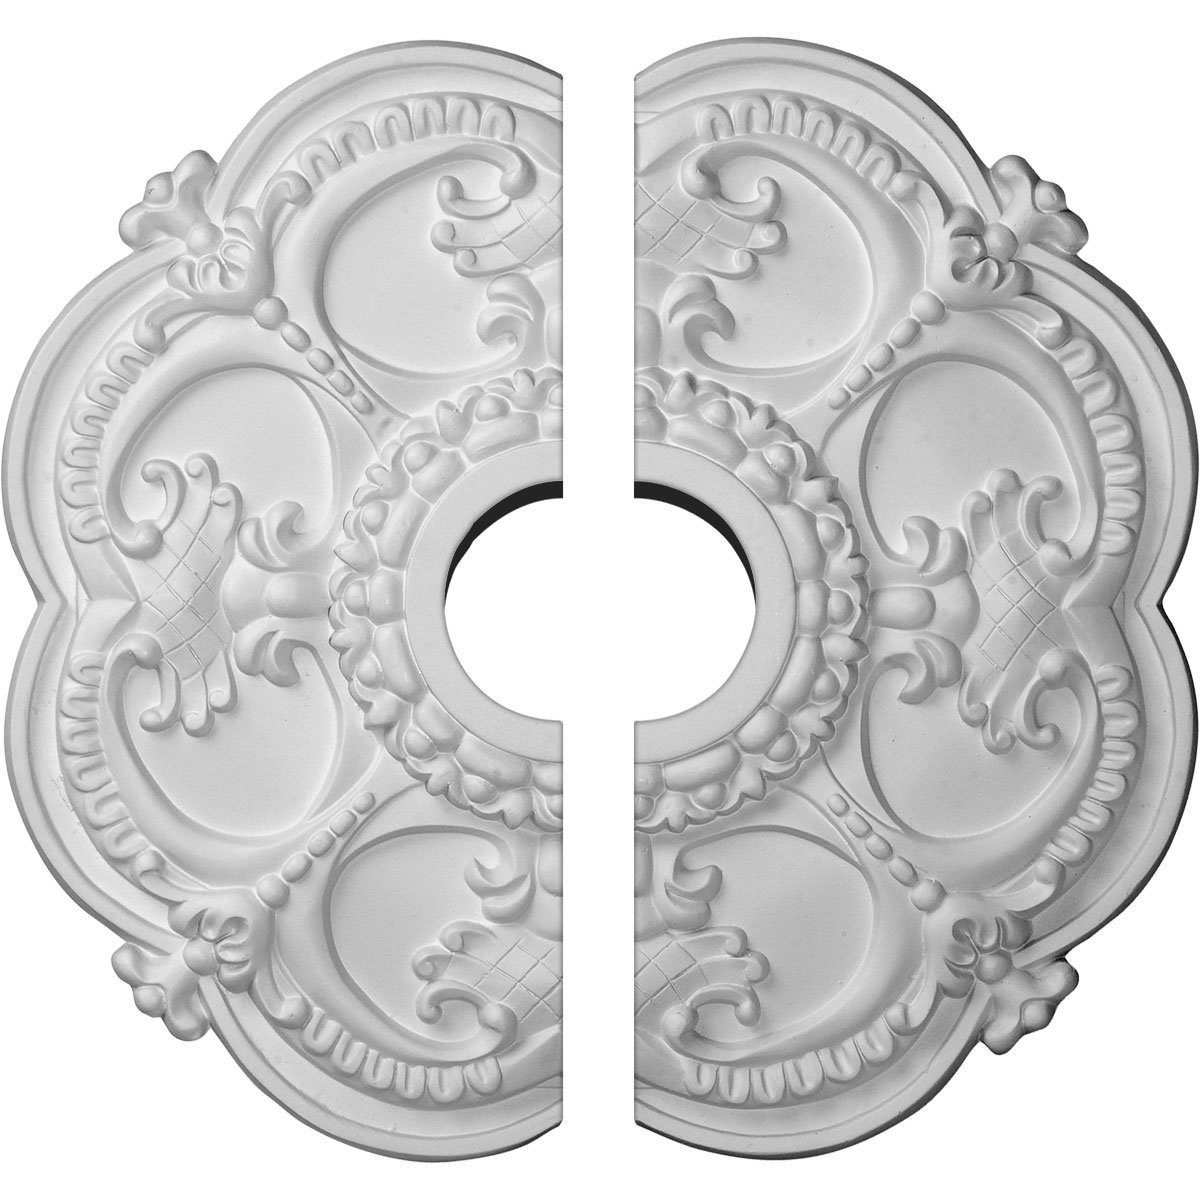 Ekena Millwork CM17RO2 18''OD x 3 1/2''ID x 1 1/2''P Rotherham Ceiling Medallion, Fits Canopies up to 3-1/2'', 2 Piece